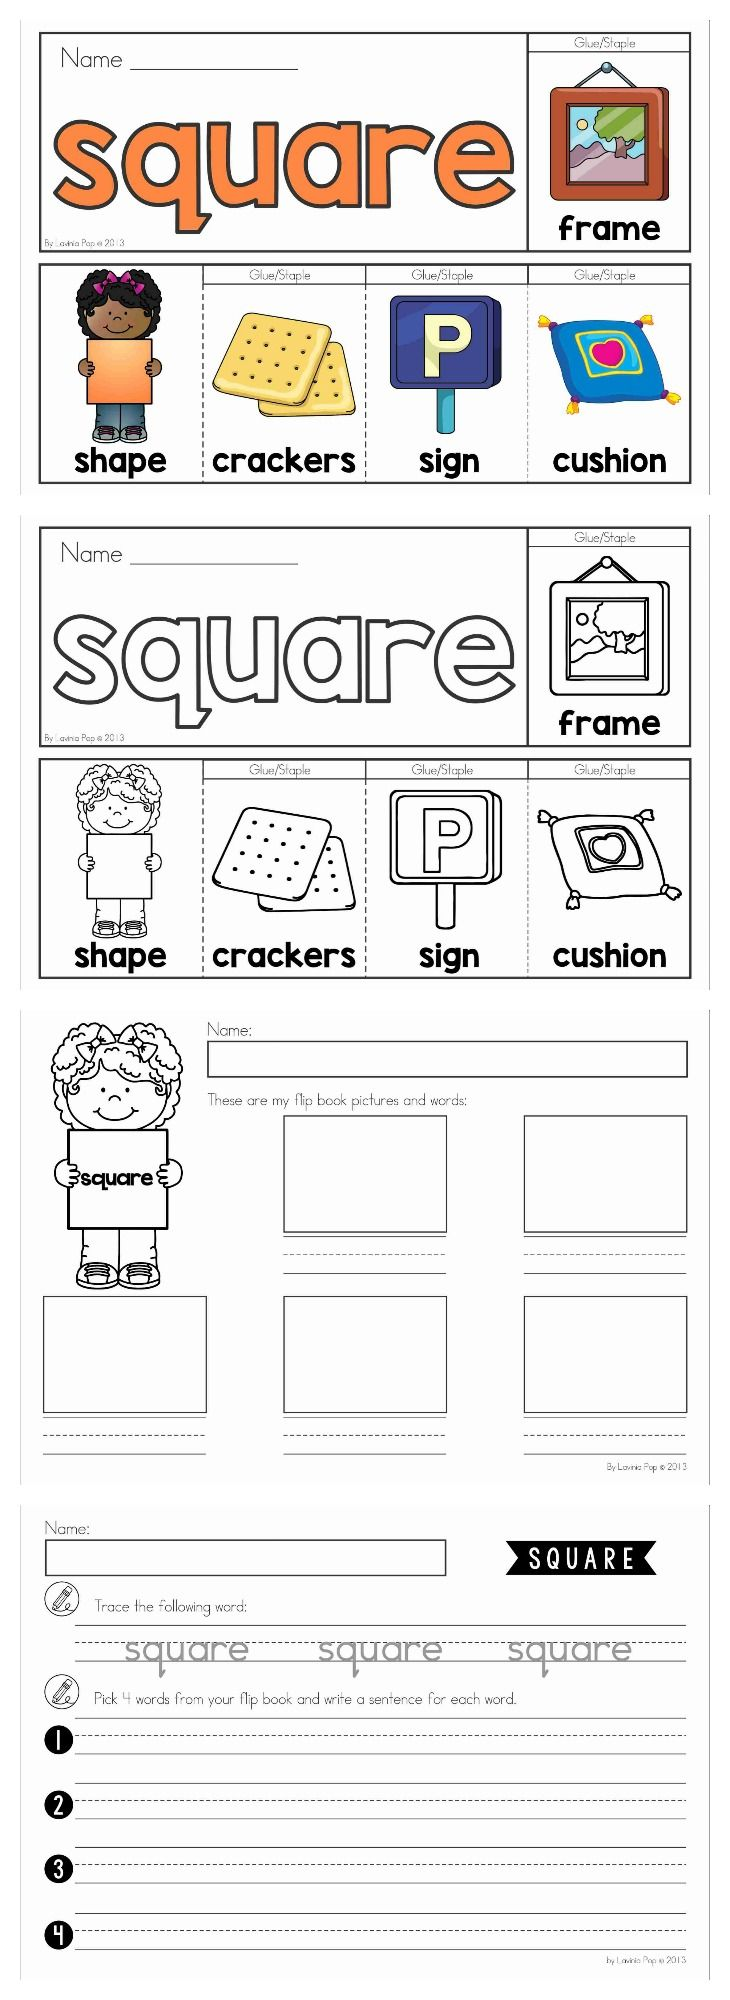 Shapes flip books (color and black and white) with 2 differentiated worksheets. Get the square pages FREE when you download the preview.